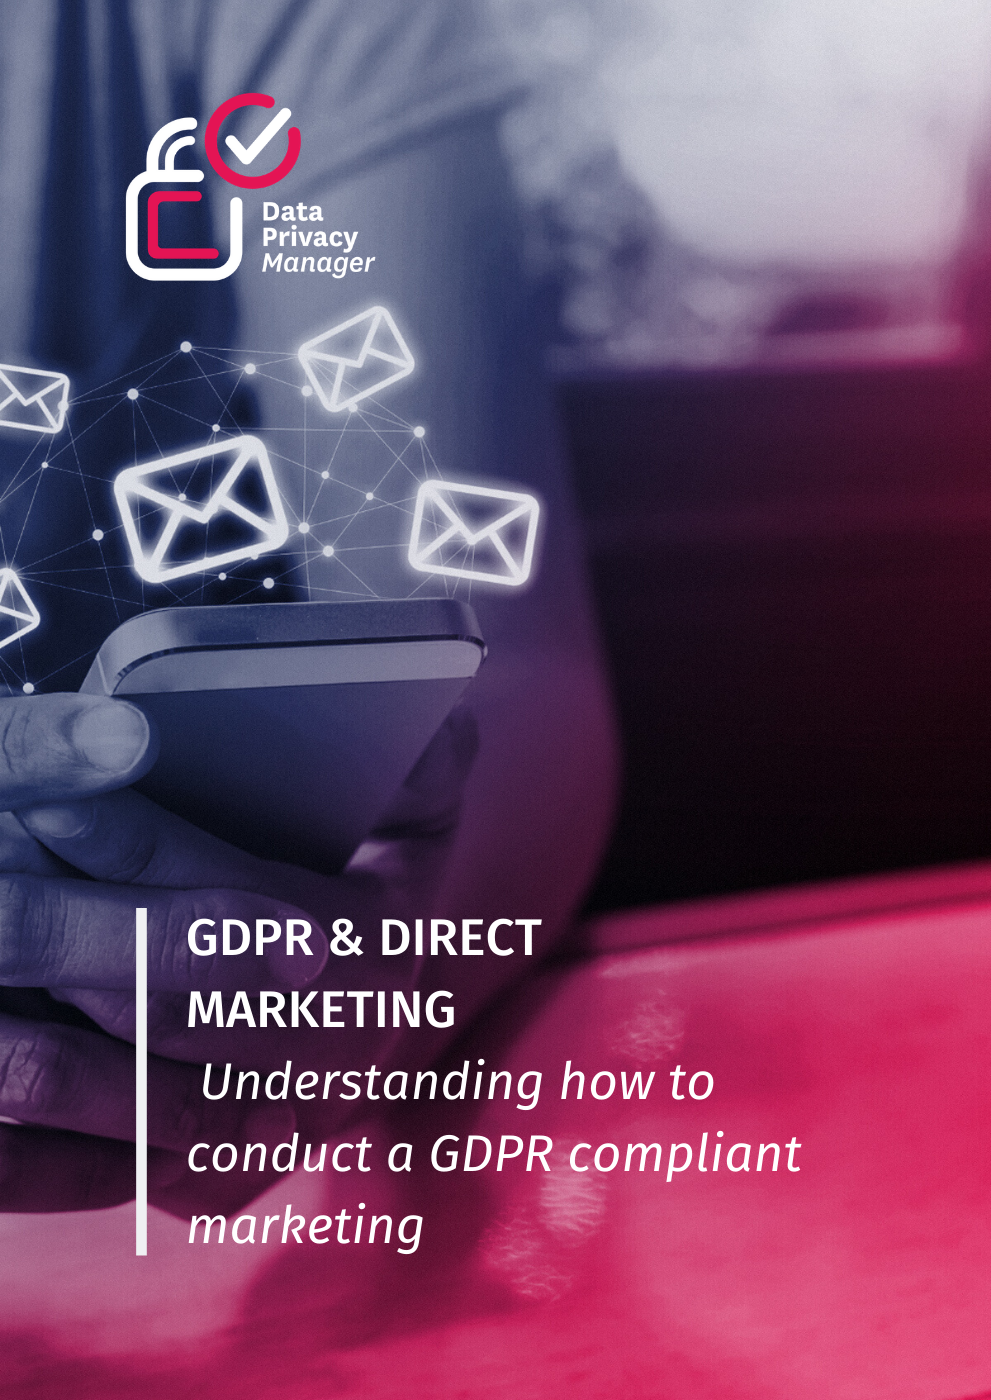 GDPR and Direct Marketing